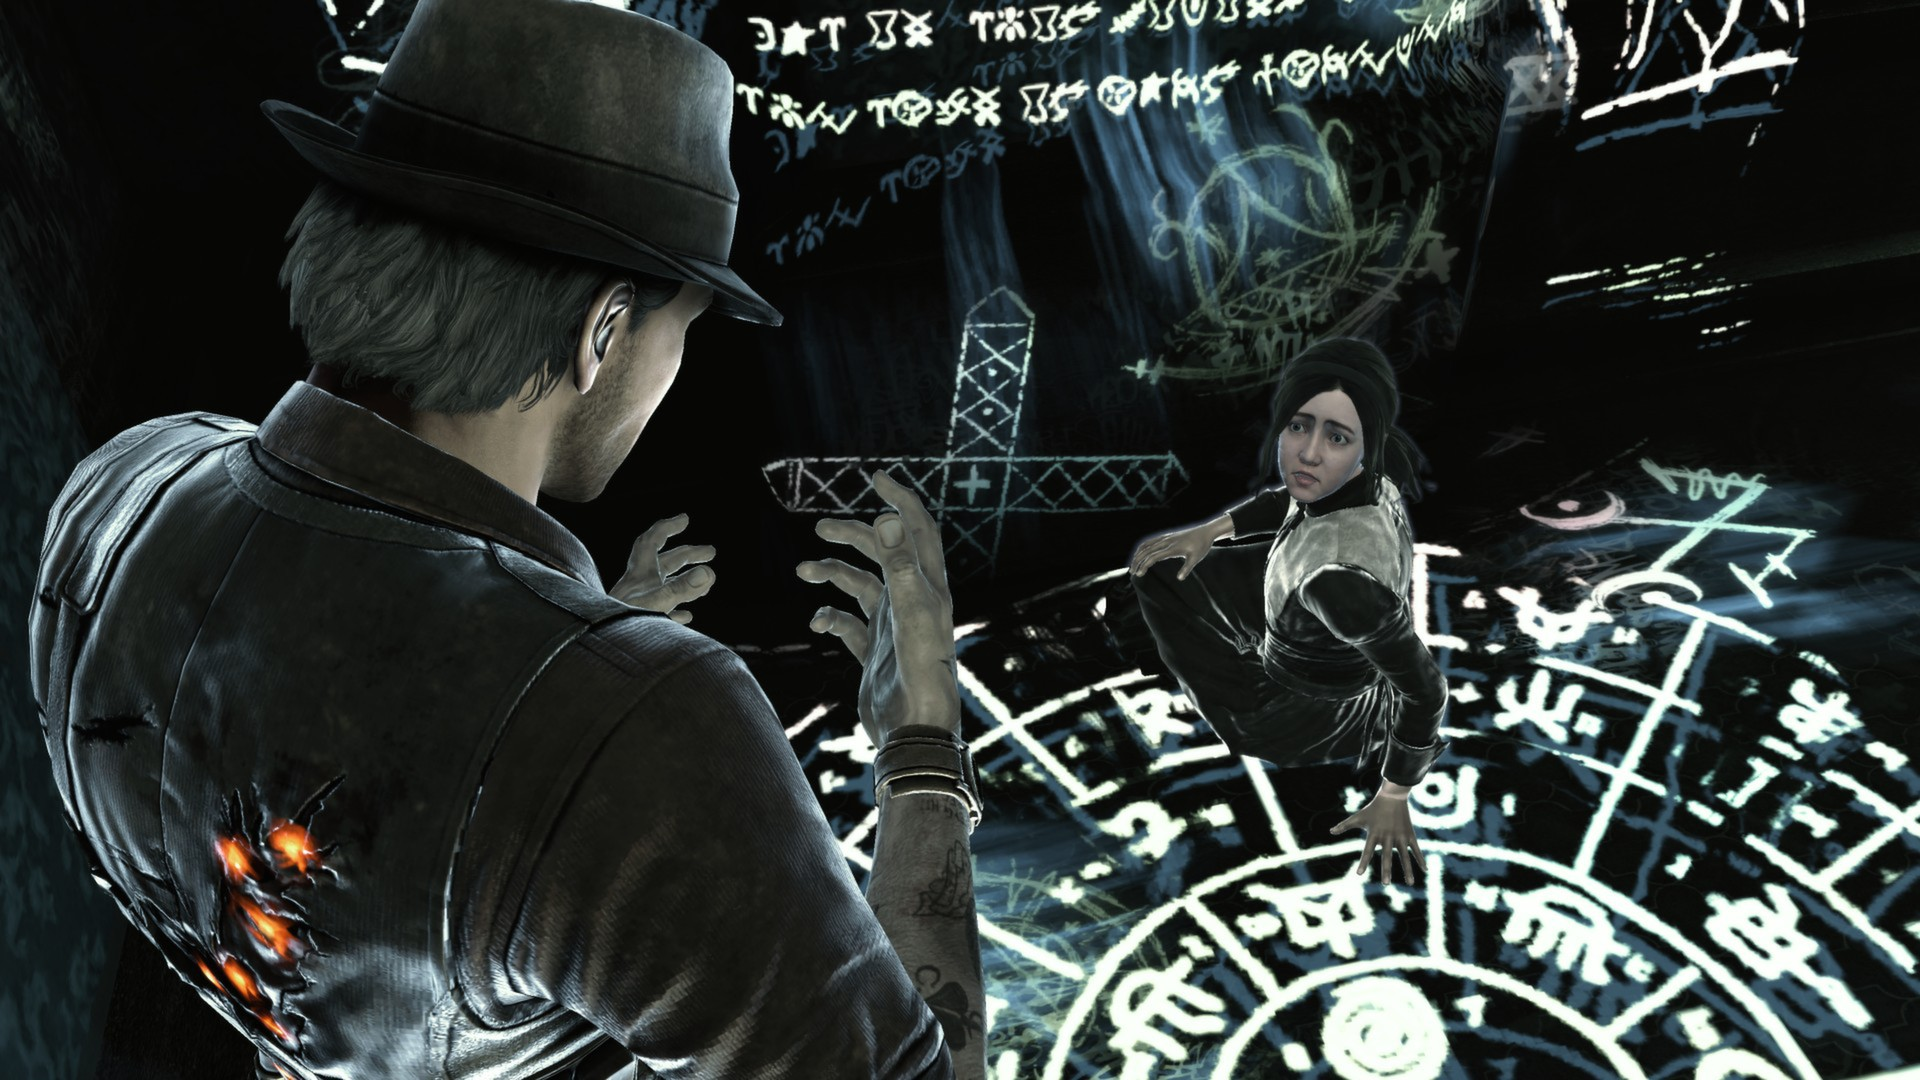 Murdered: Soul Suspect (Steam Key ROW / Region Free)